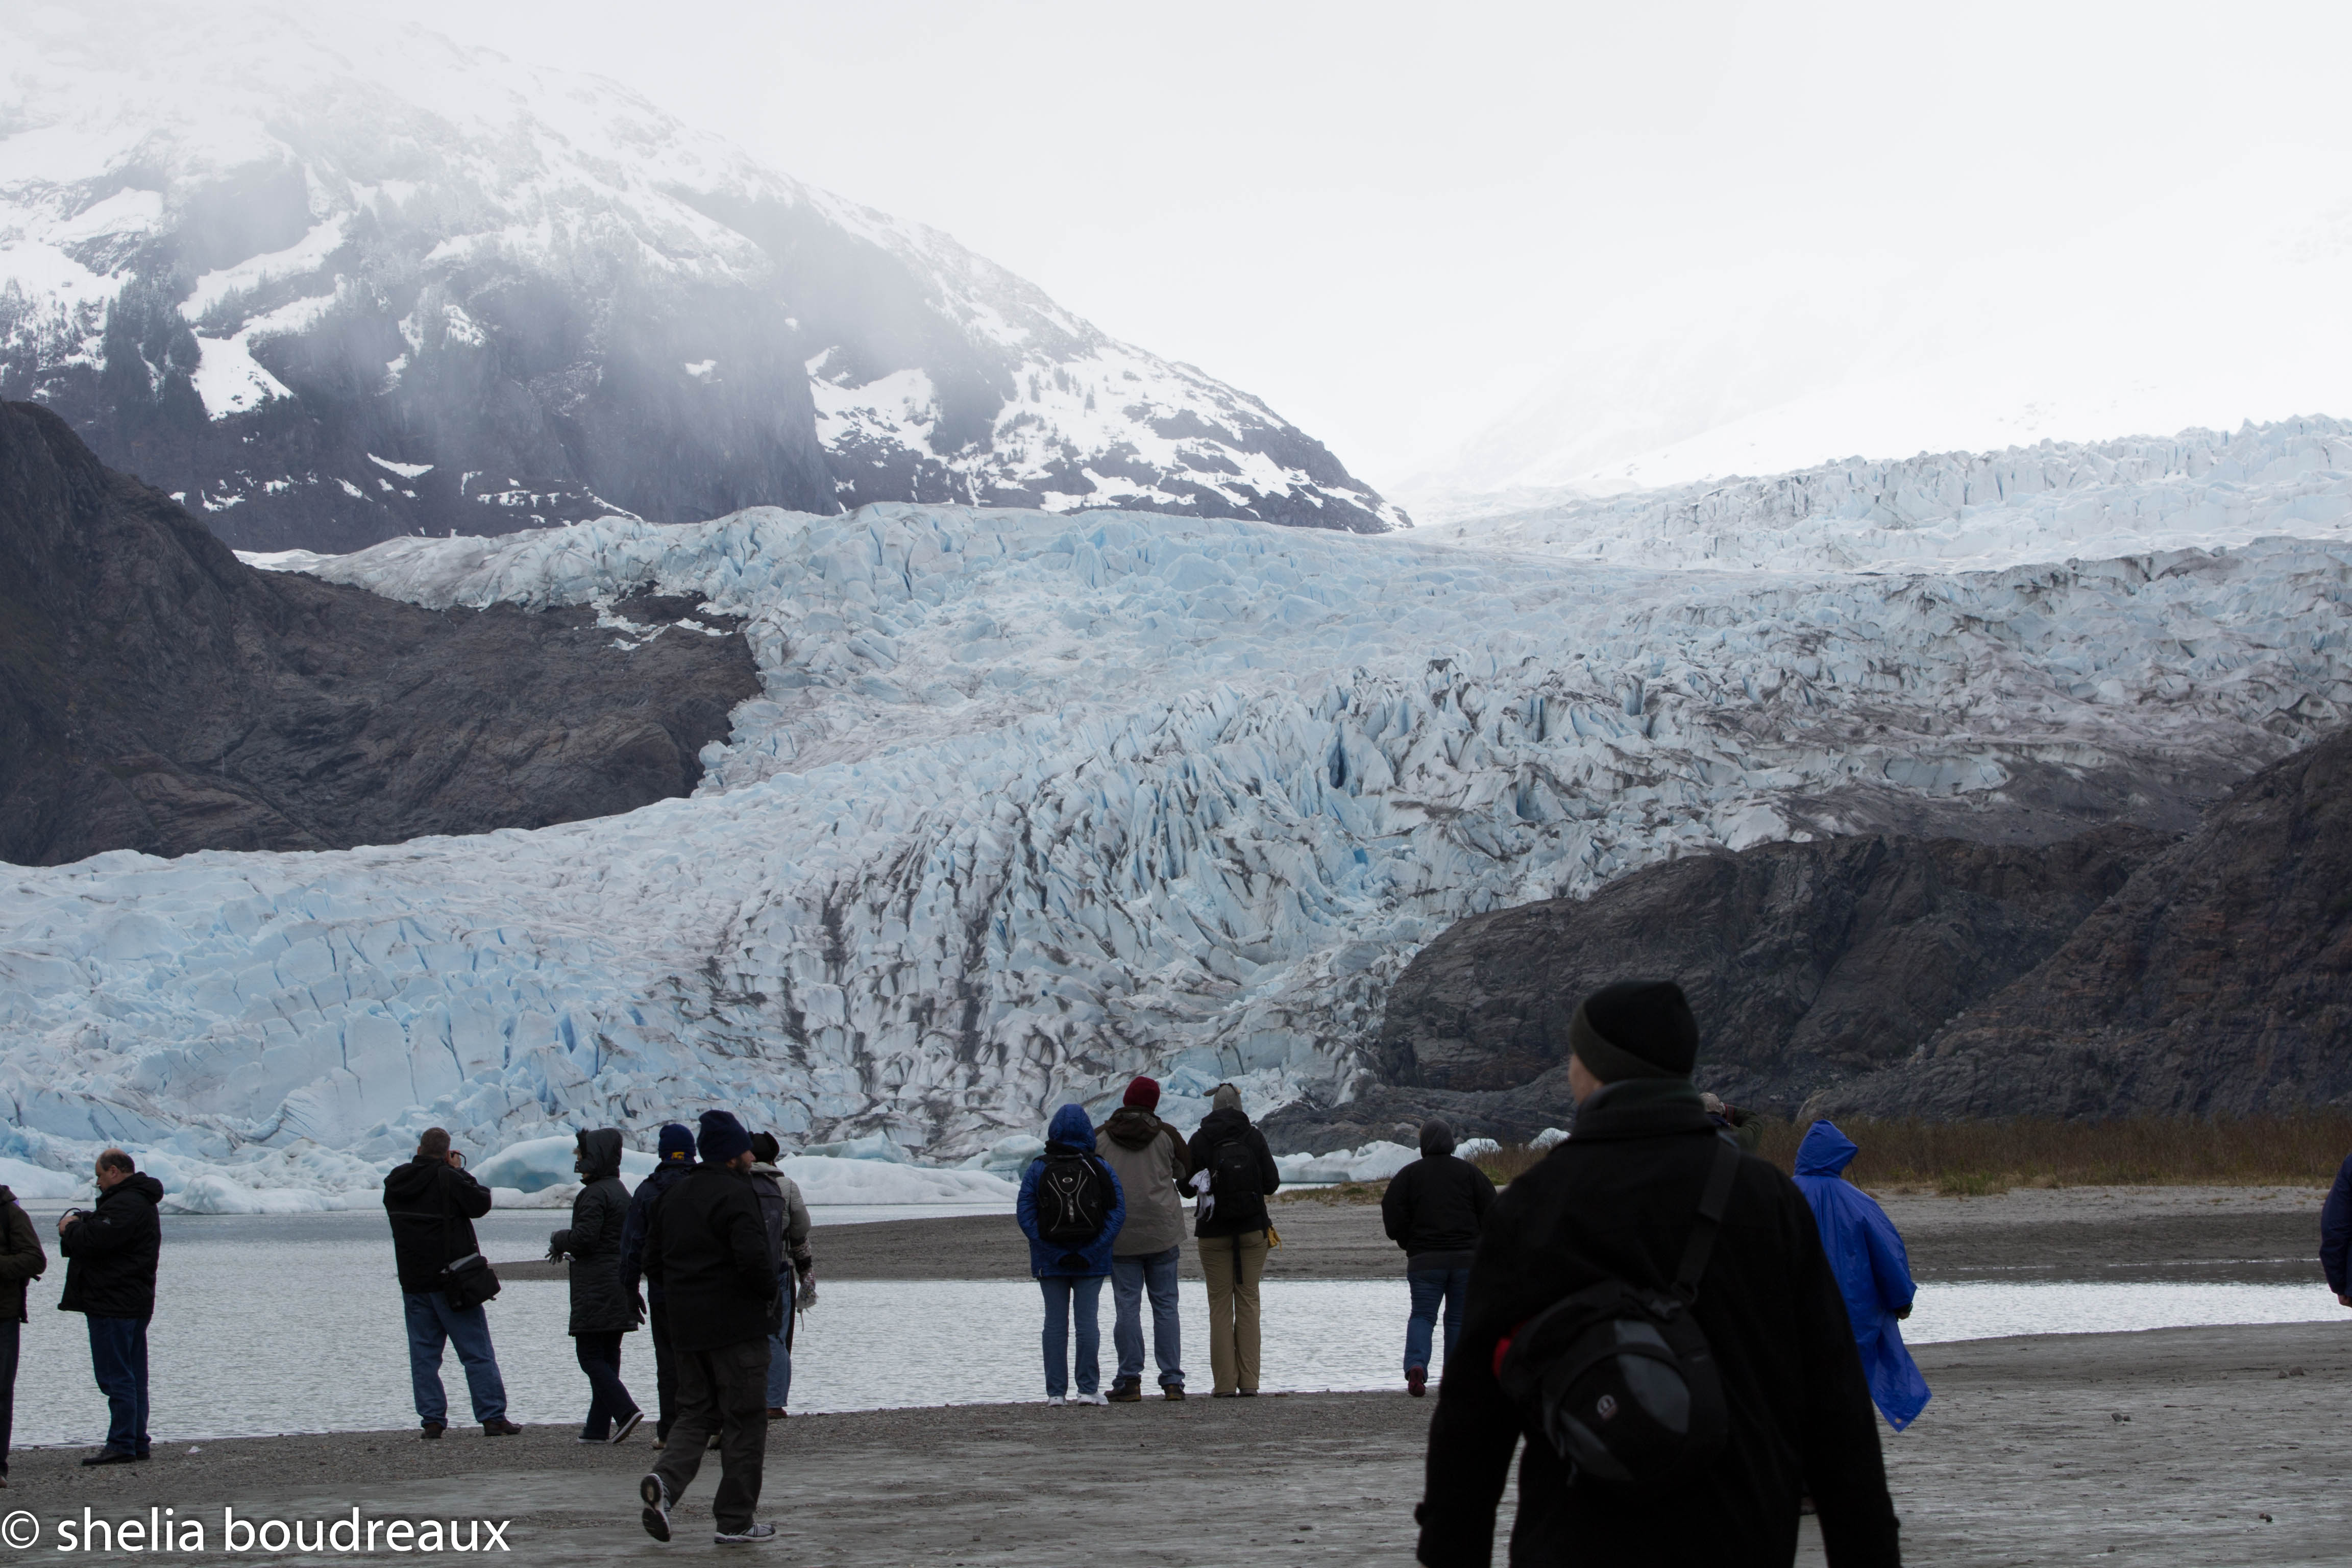 The guide said it was one mile from where we were standing. That is how big the glacier is!!